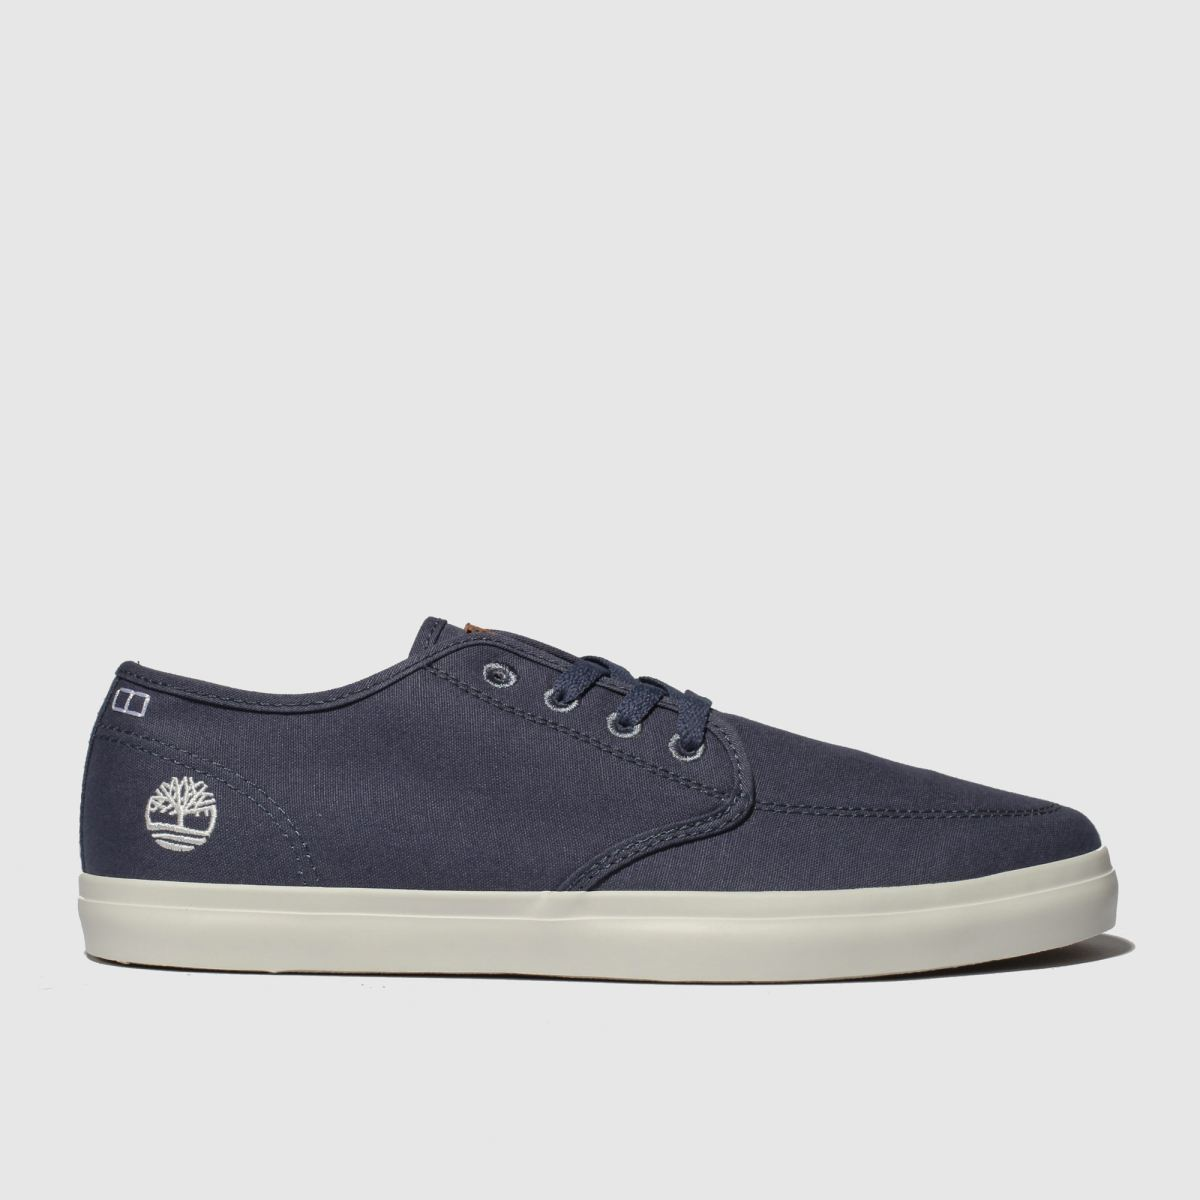 Timberland Navy Union Wharf Derby Sneaker Shoes